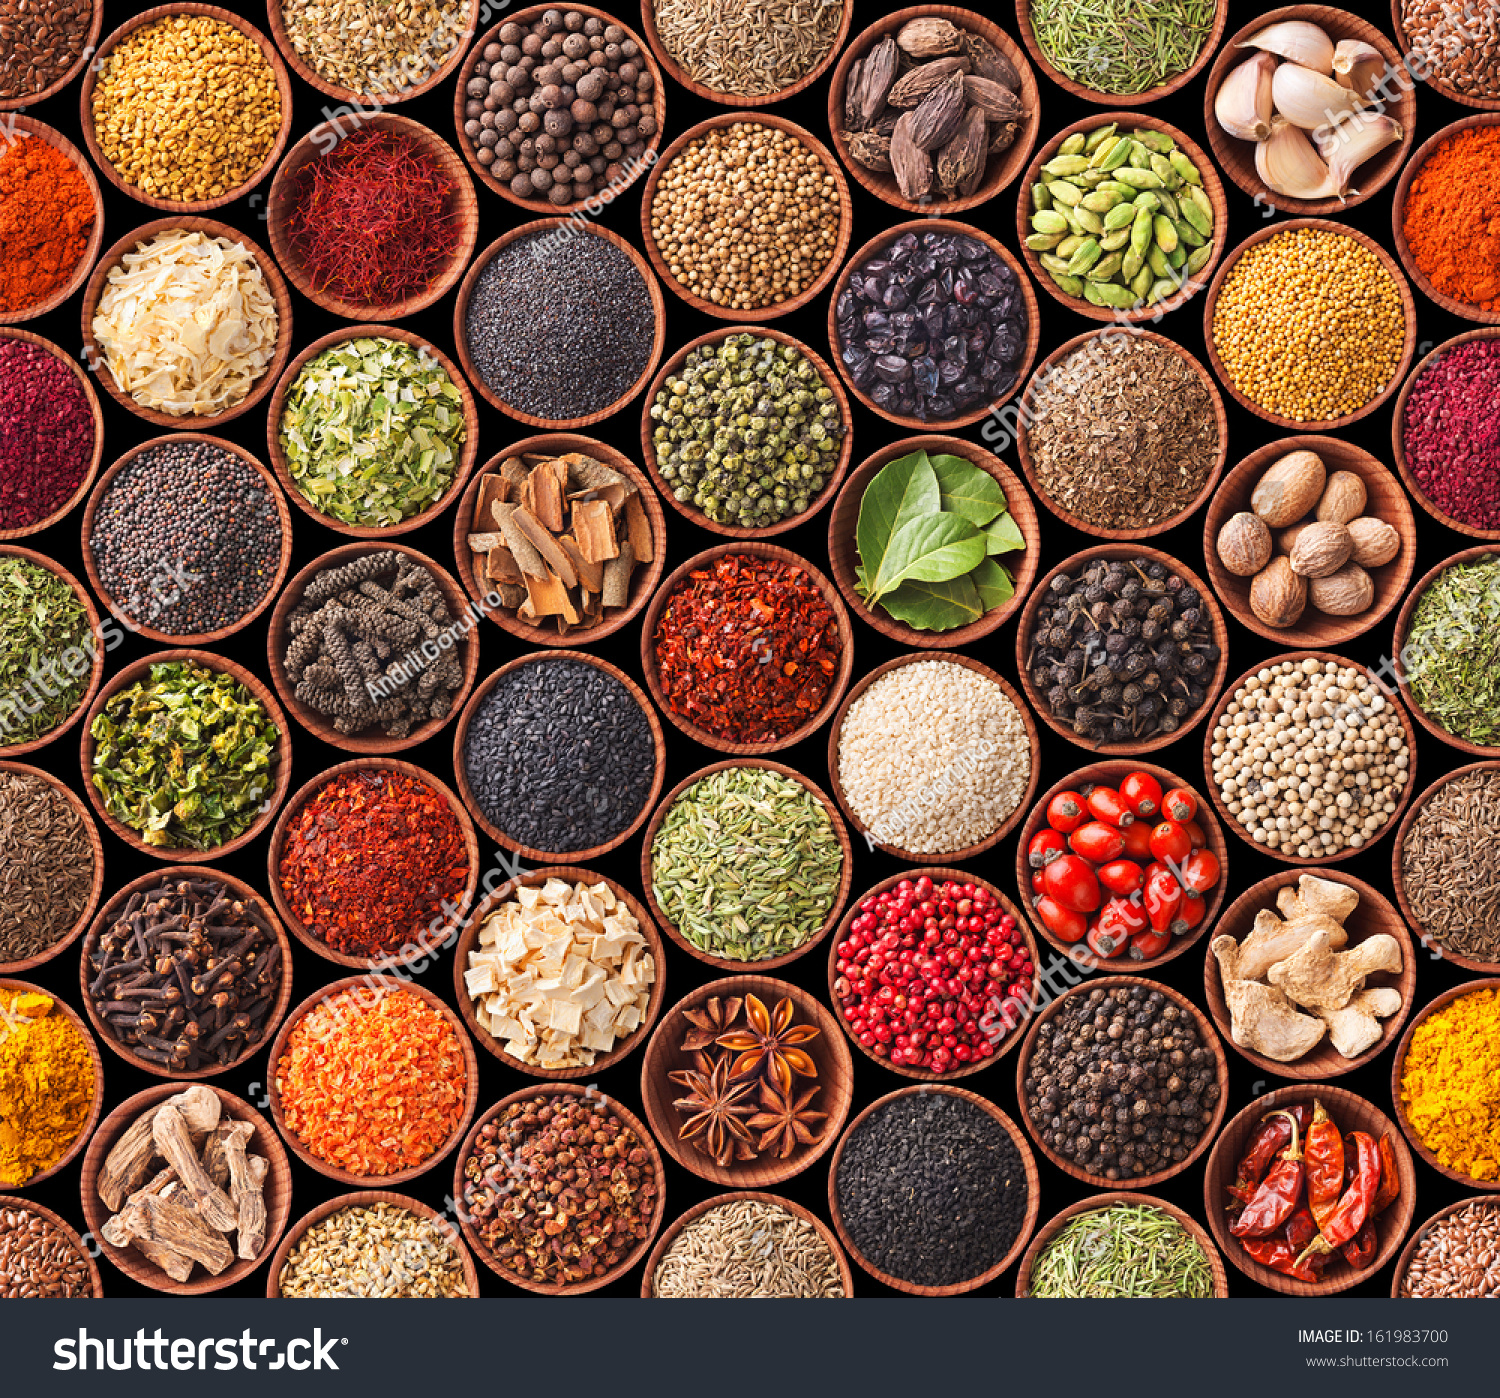 Cuisine Meaning English Spices Name In Tamil Knowledge Well